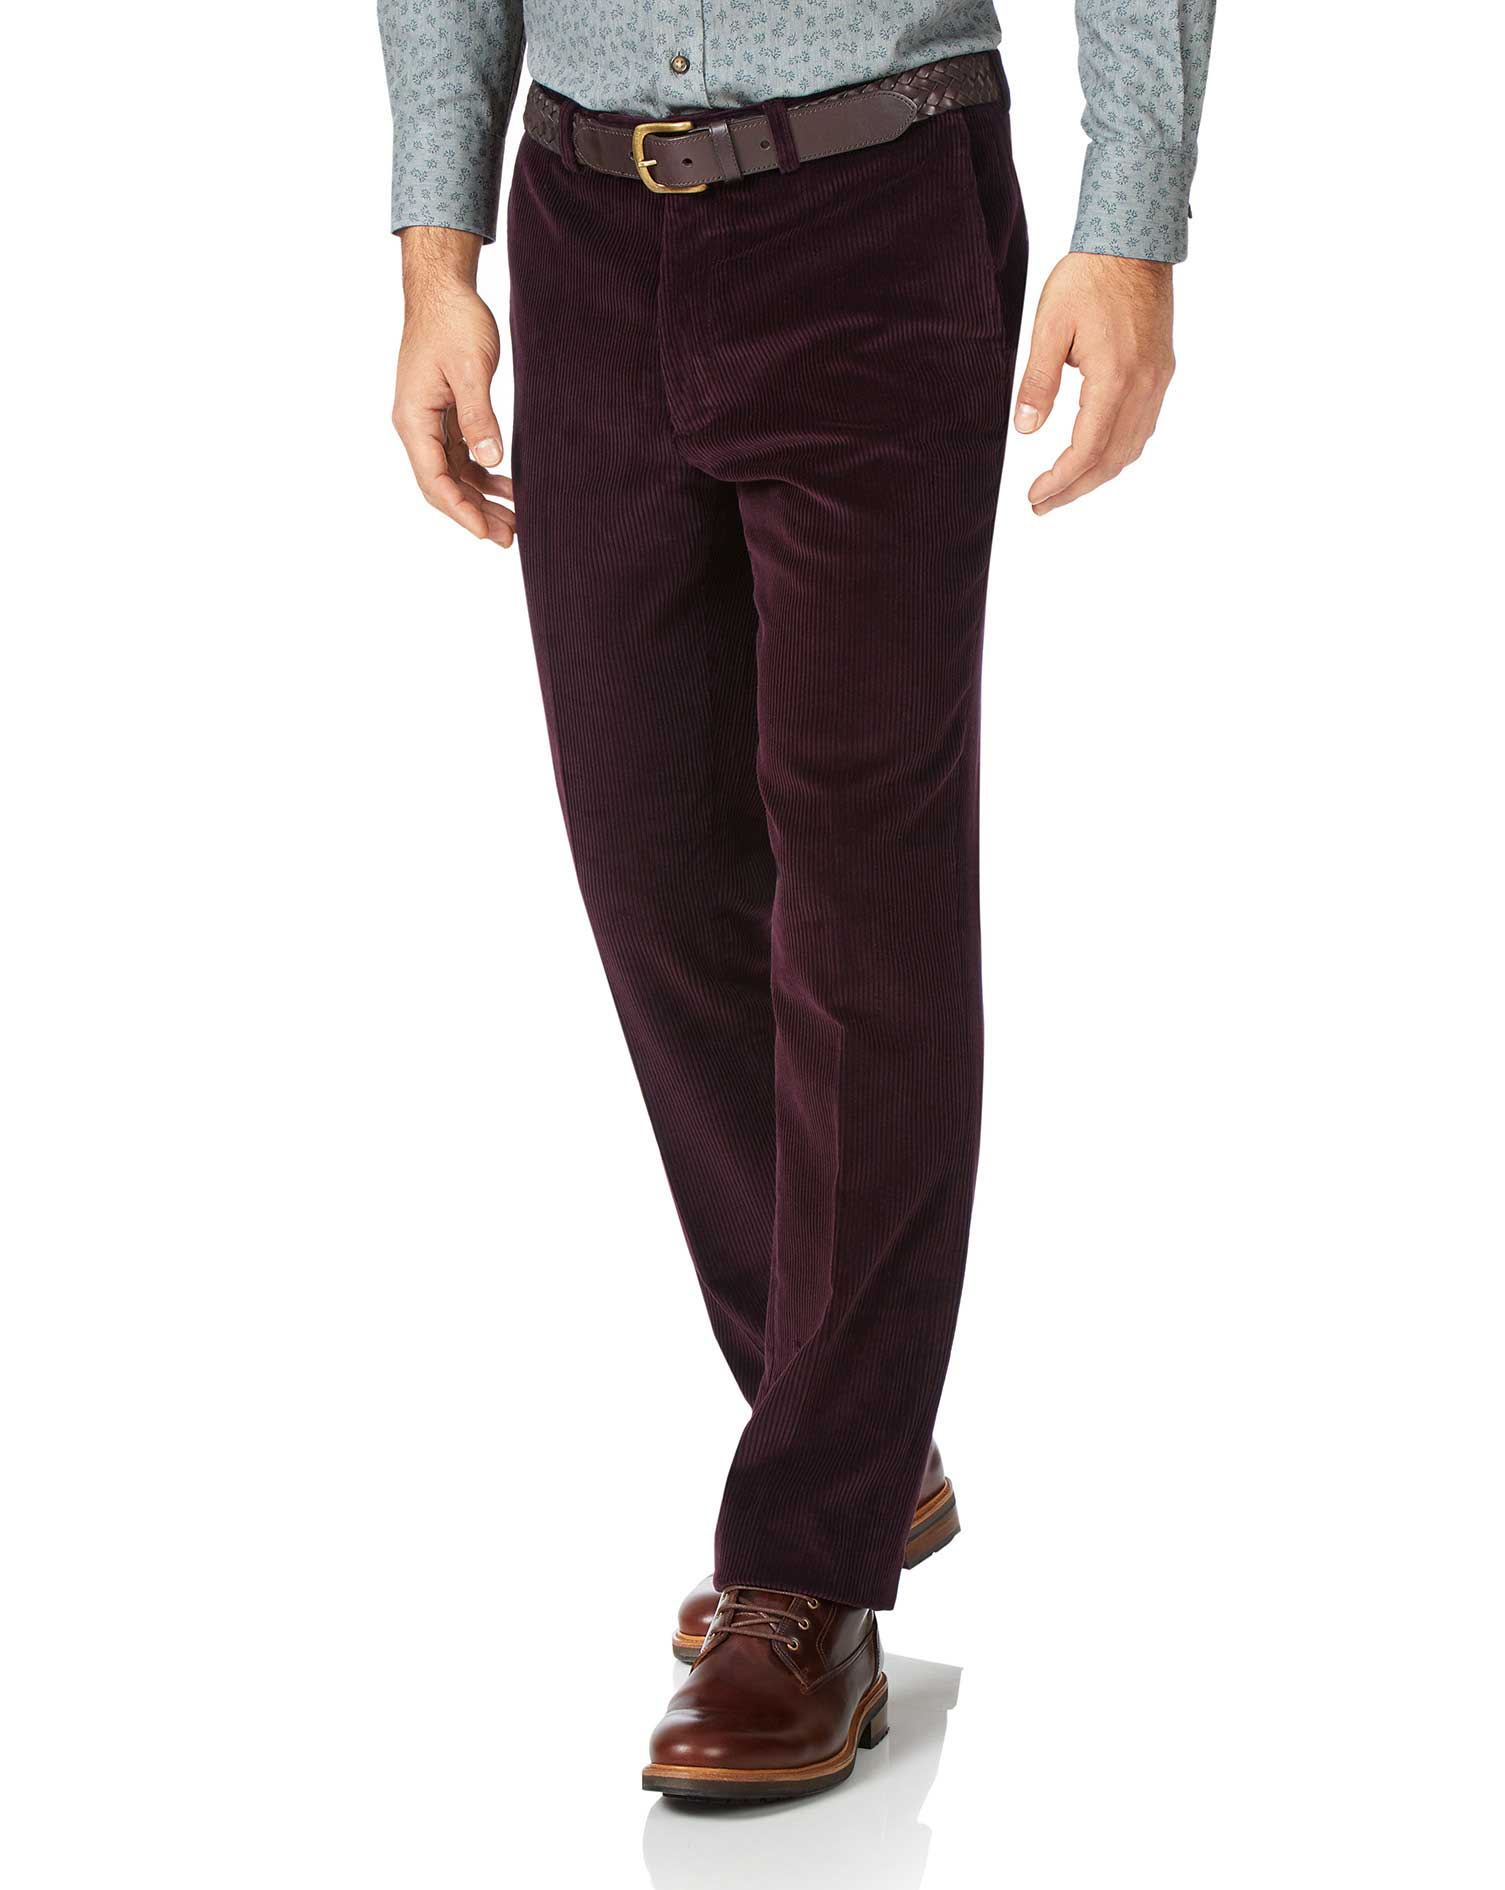 Wine Slim Fit Jumbo Corduroy Trousers Size W34 L32 by Charles Tyrwhitt